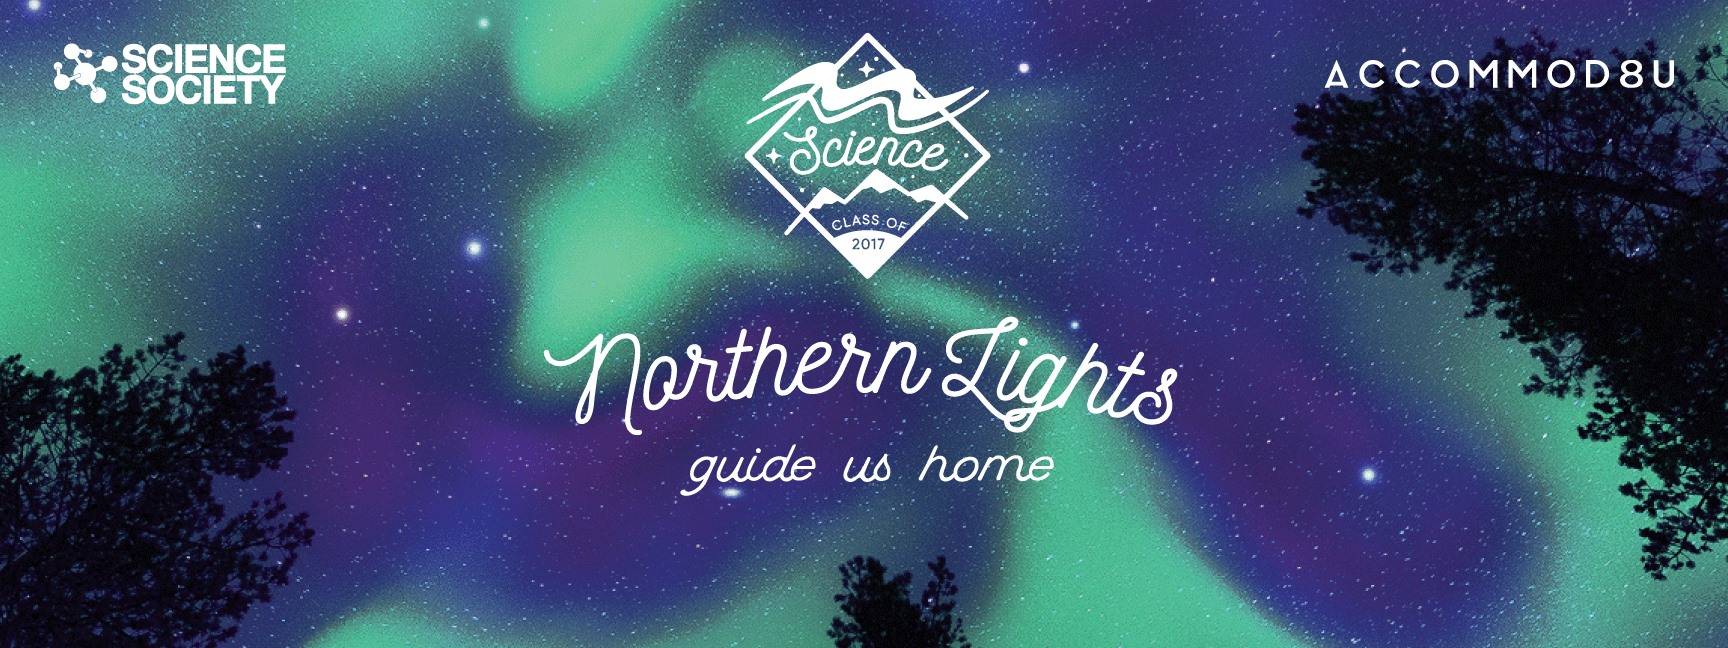 Science GradBall 2017: Northern Lights